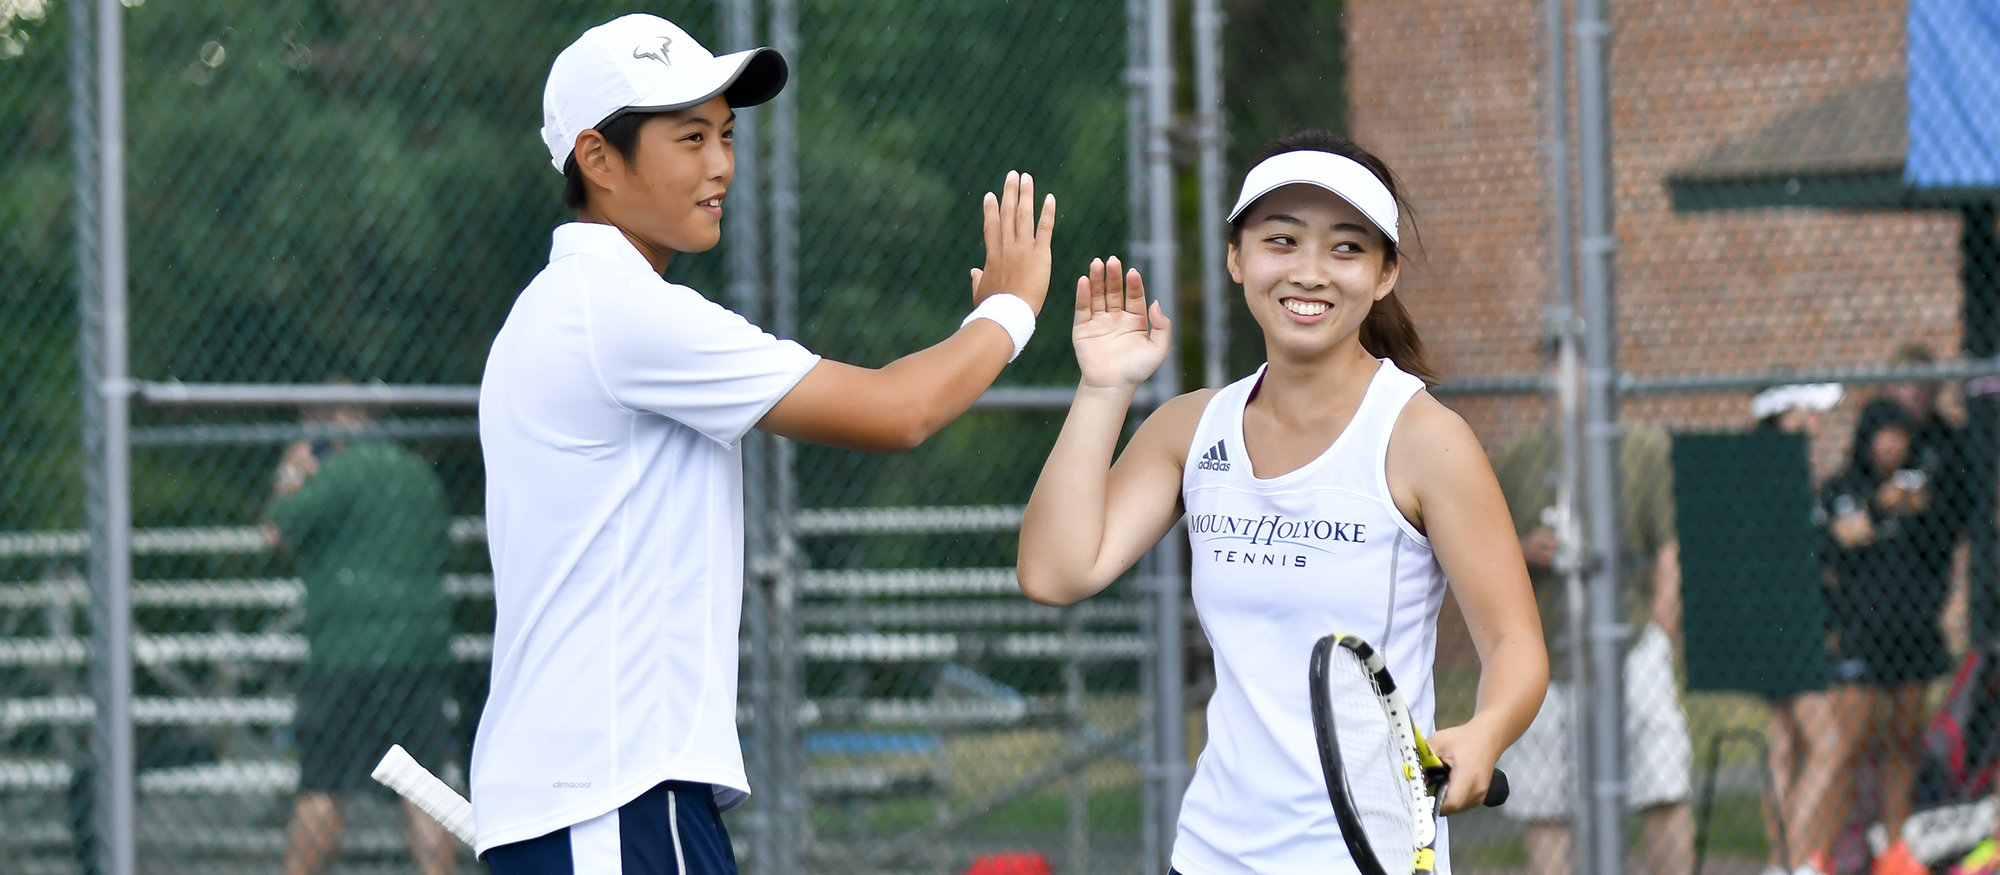 Action photo of Lyons tennis players Ching-Ching Huang (left) and Ayame Yazawa (right).